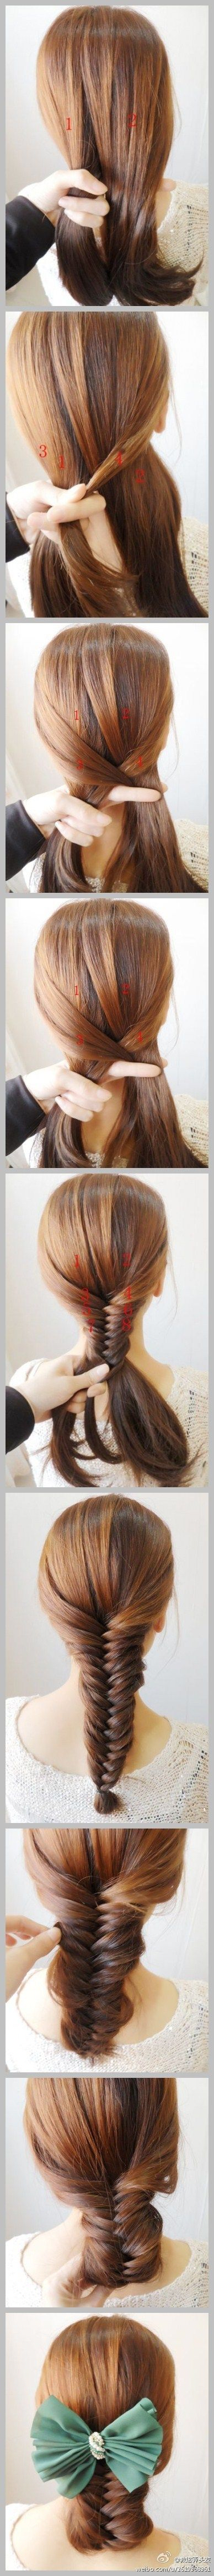 fishbone braid instructions - photo #25